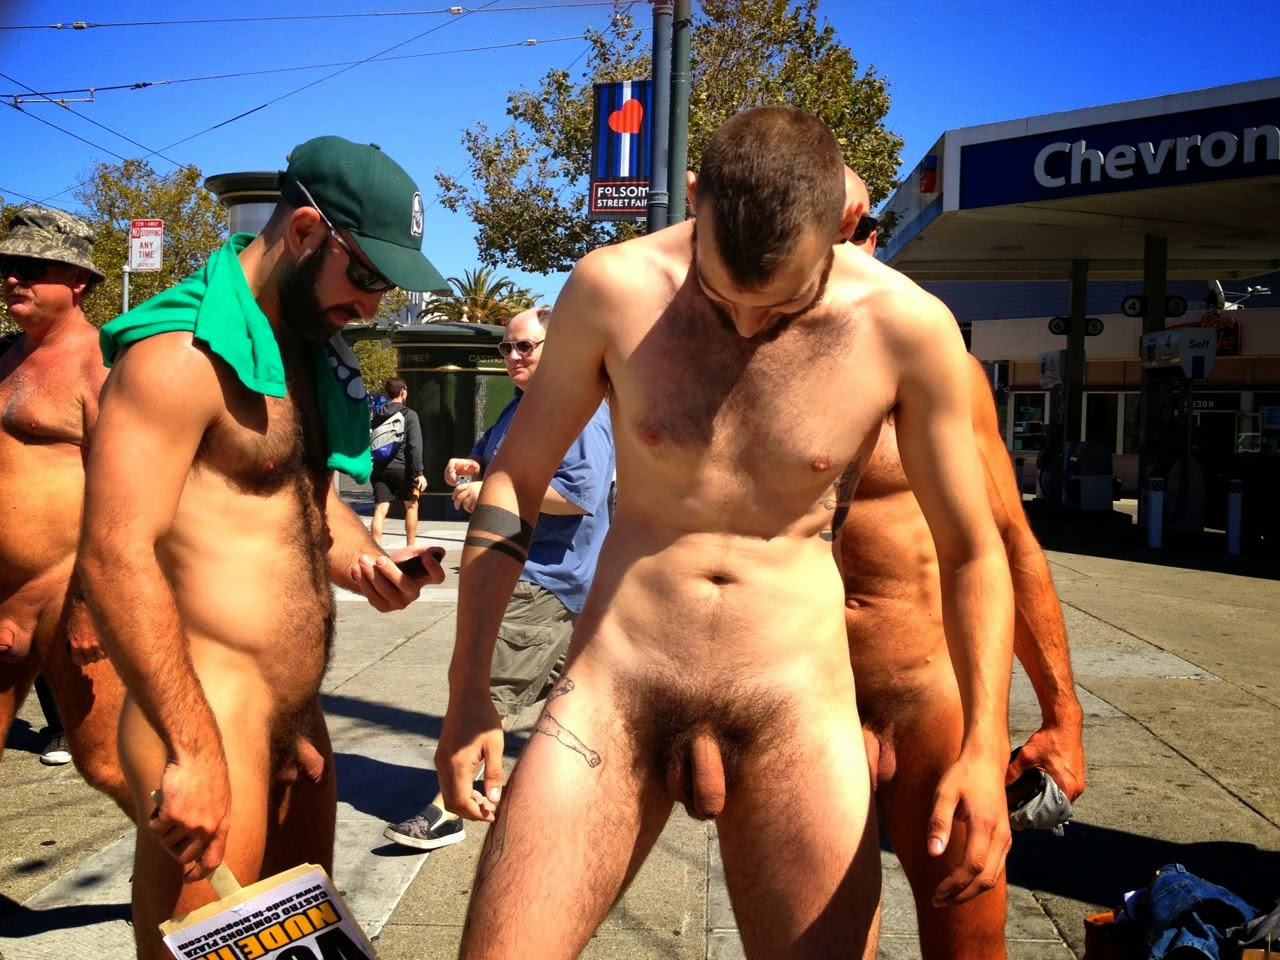 Hot naked straight tan boys and australian men fucking gay does nude